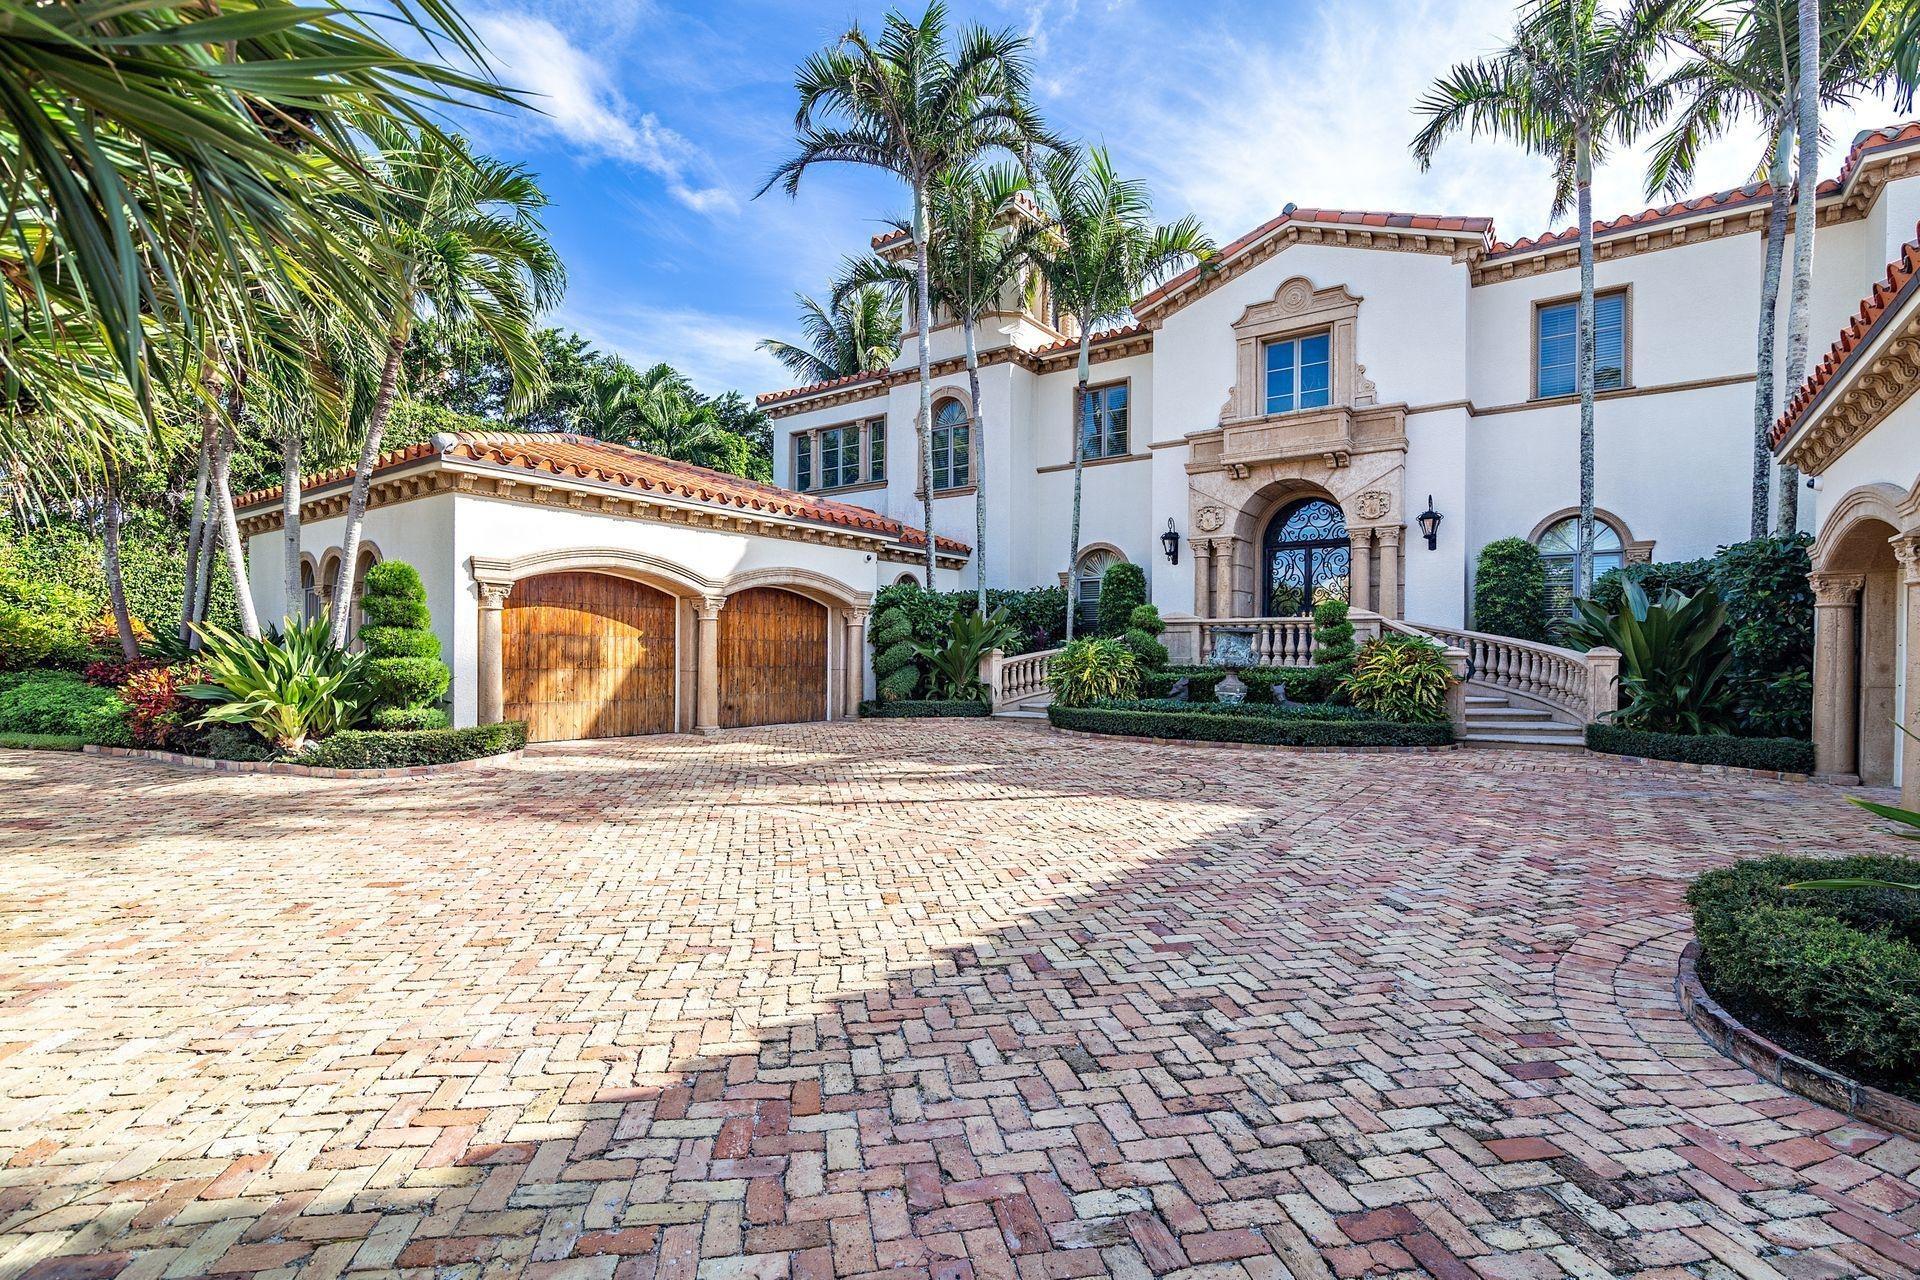 New Home for sale at 120 Clarendon Avenue in Palm Beach